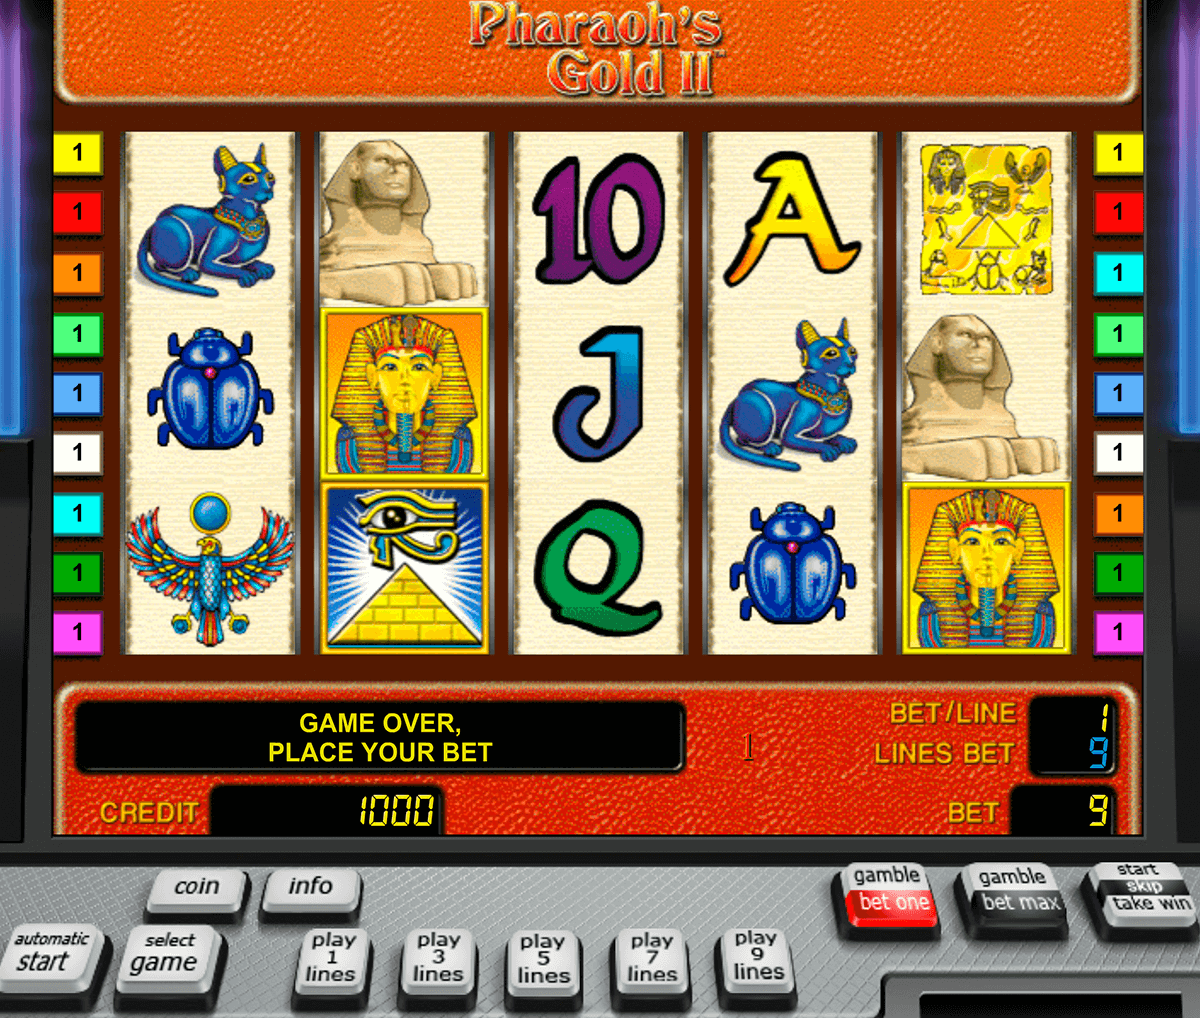 pharaohs gold ii novomatic casino gokkasten